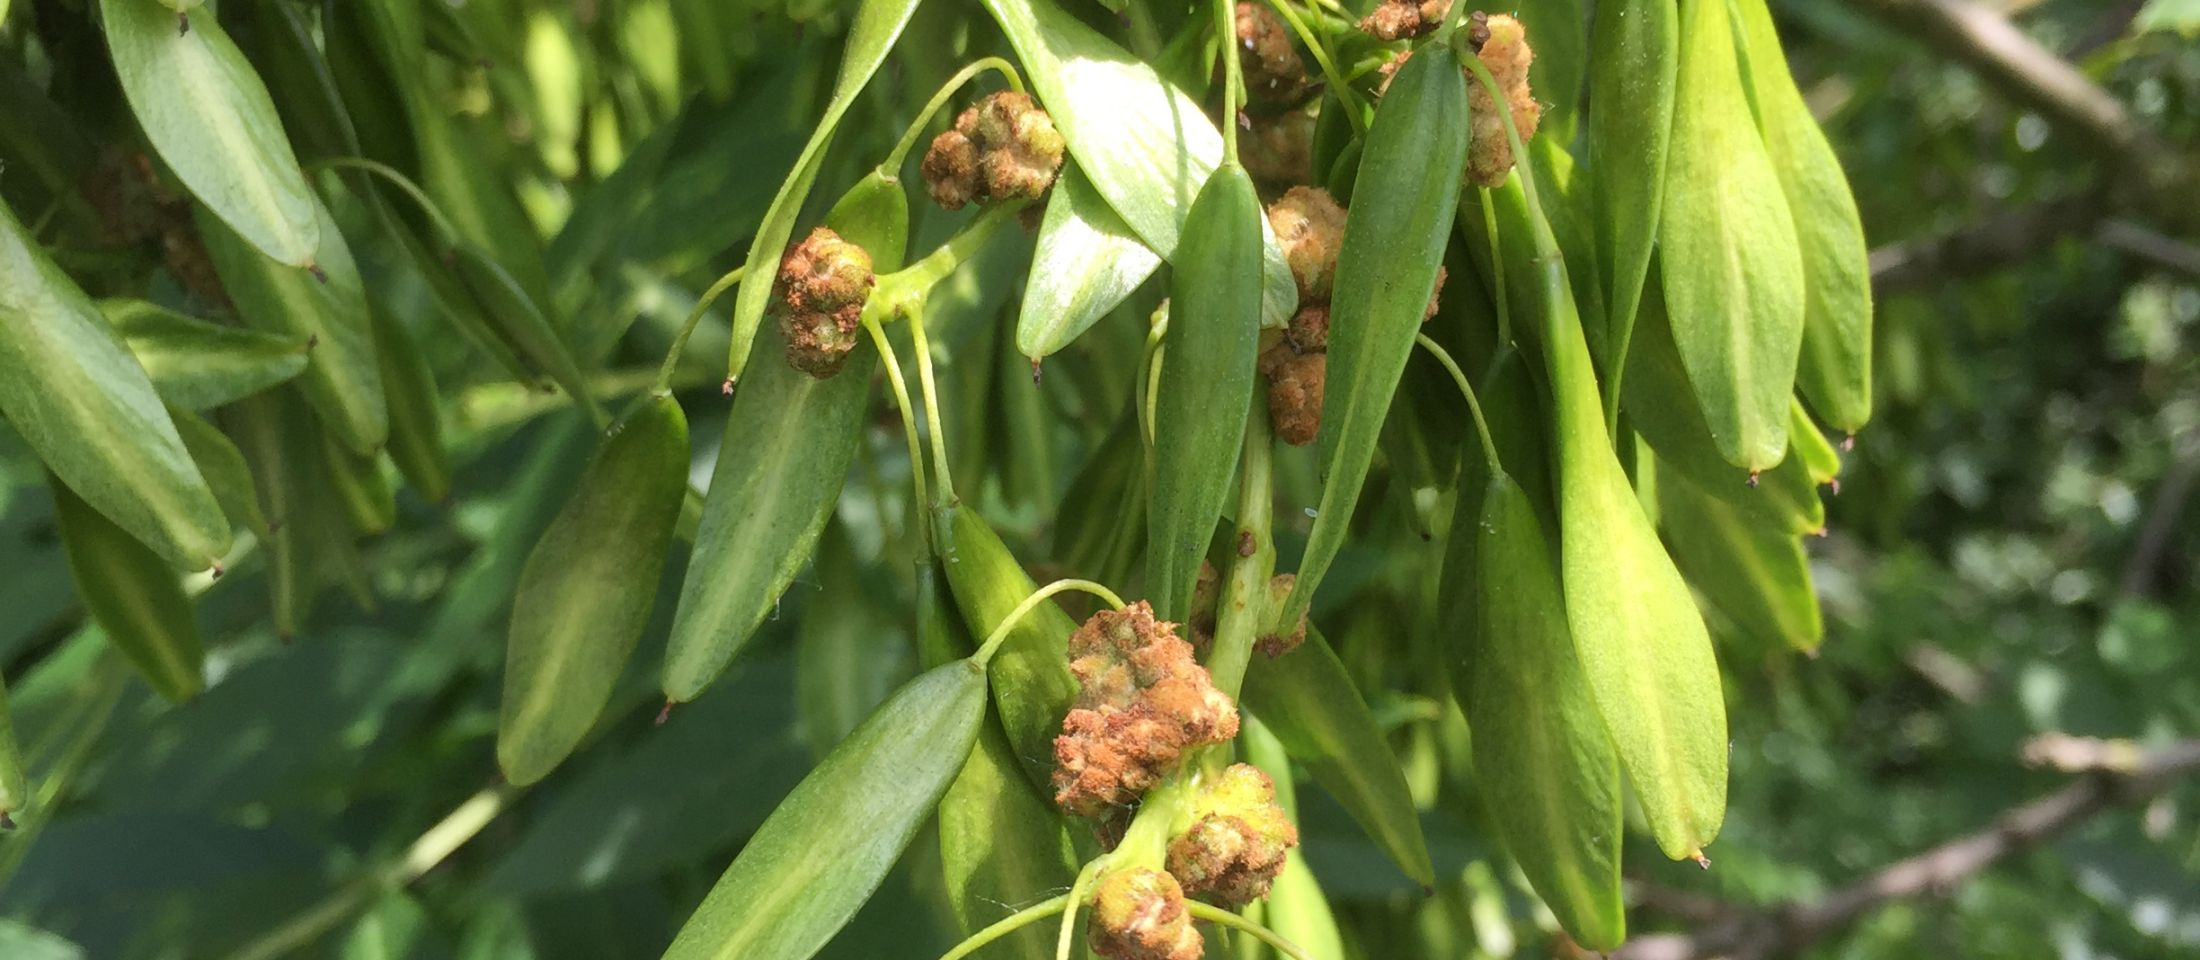 Cauliflower galls. Photo: Tony Harwood